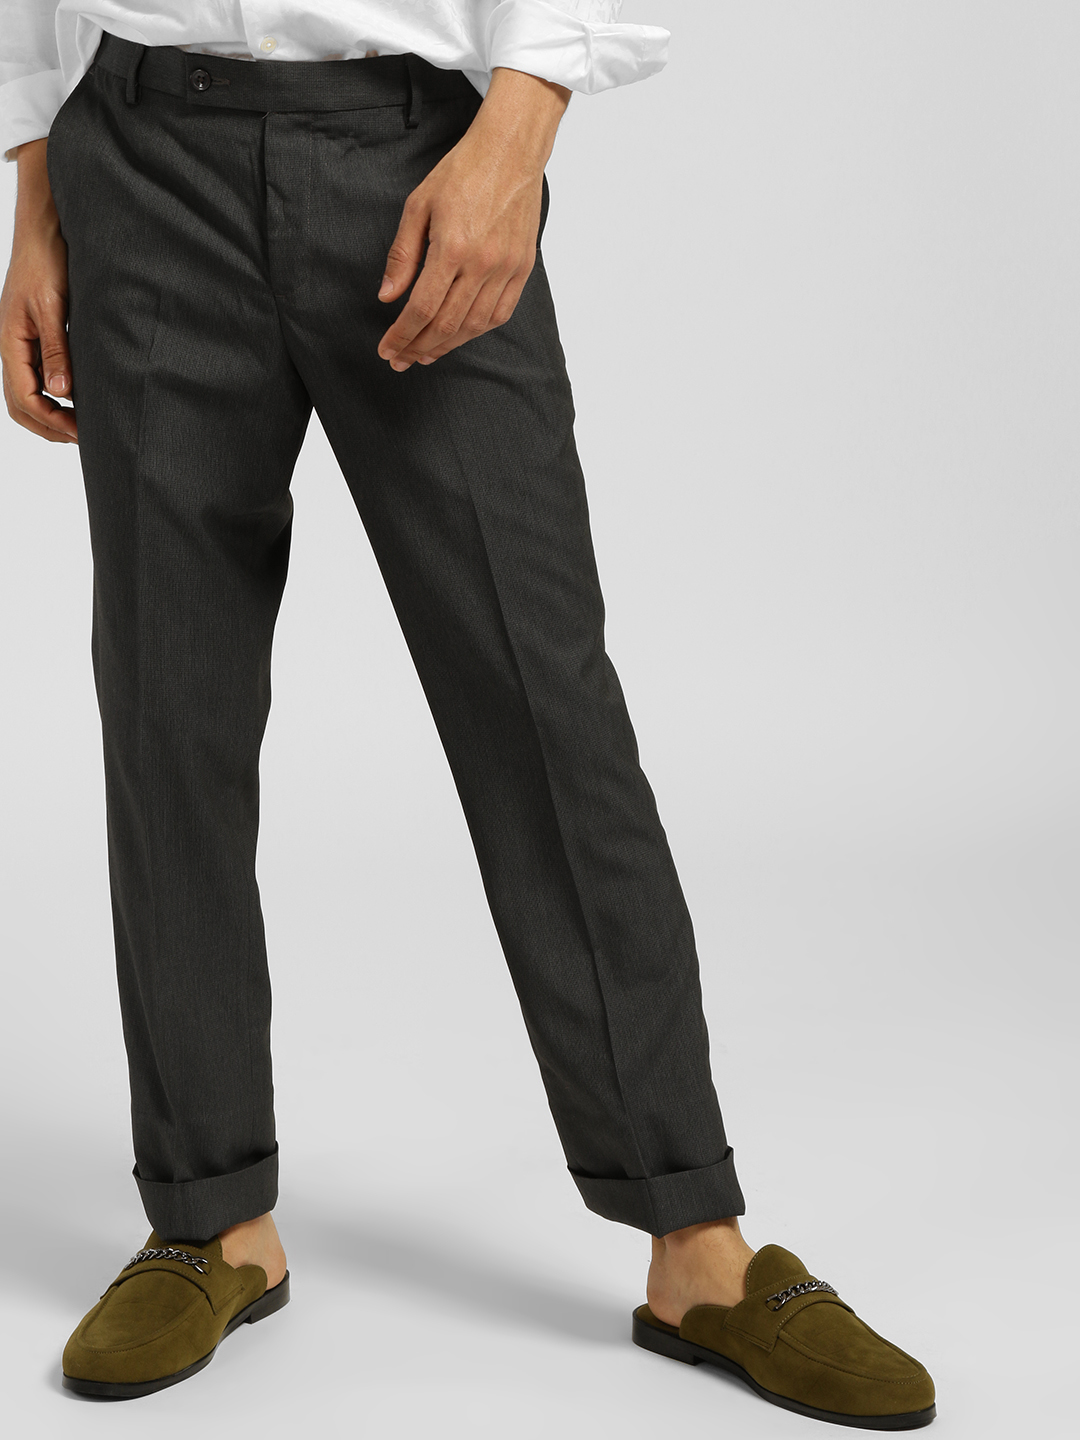 Indigo Nation Grey Textured Slim Fit Trousers 1